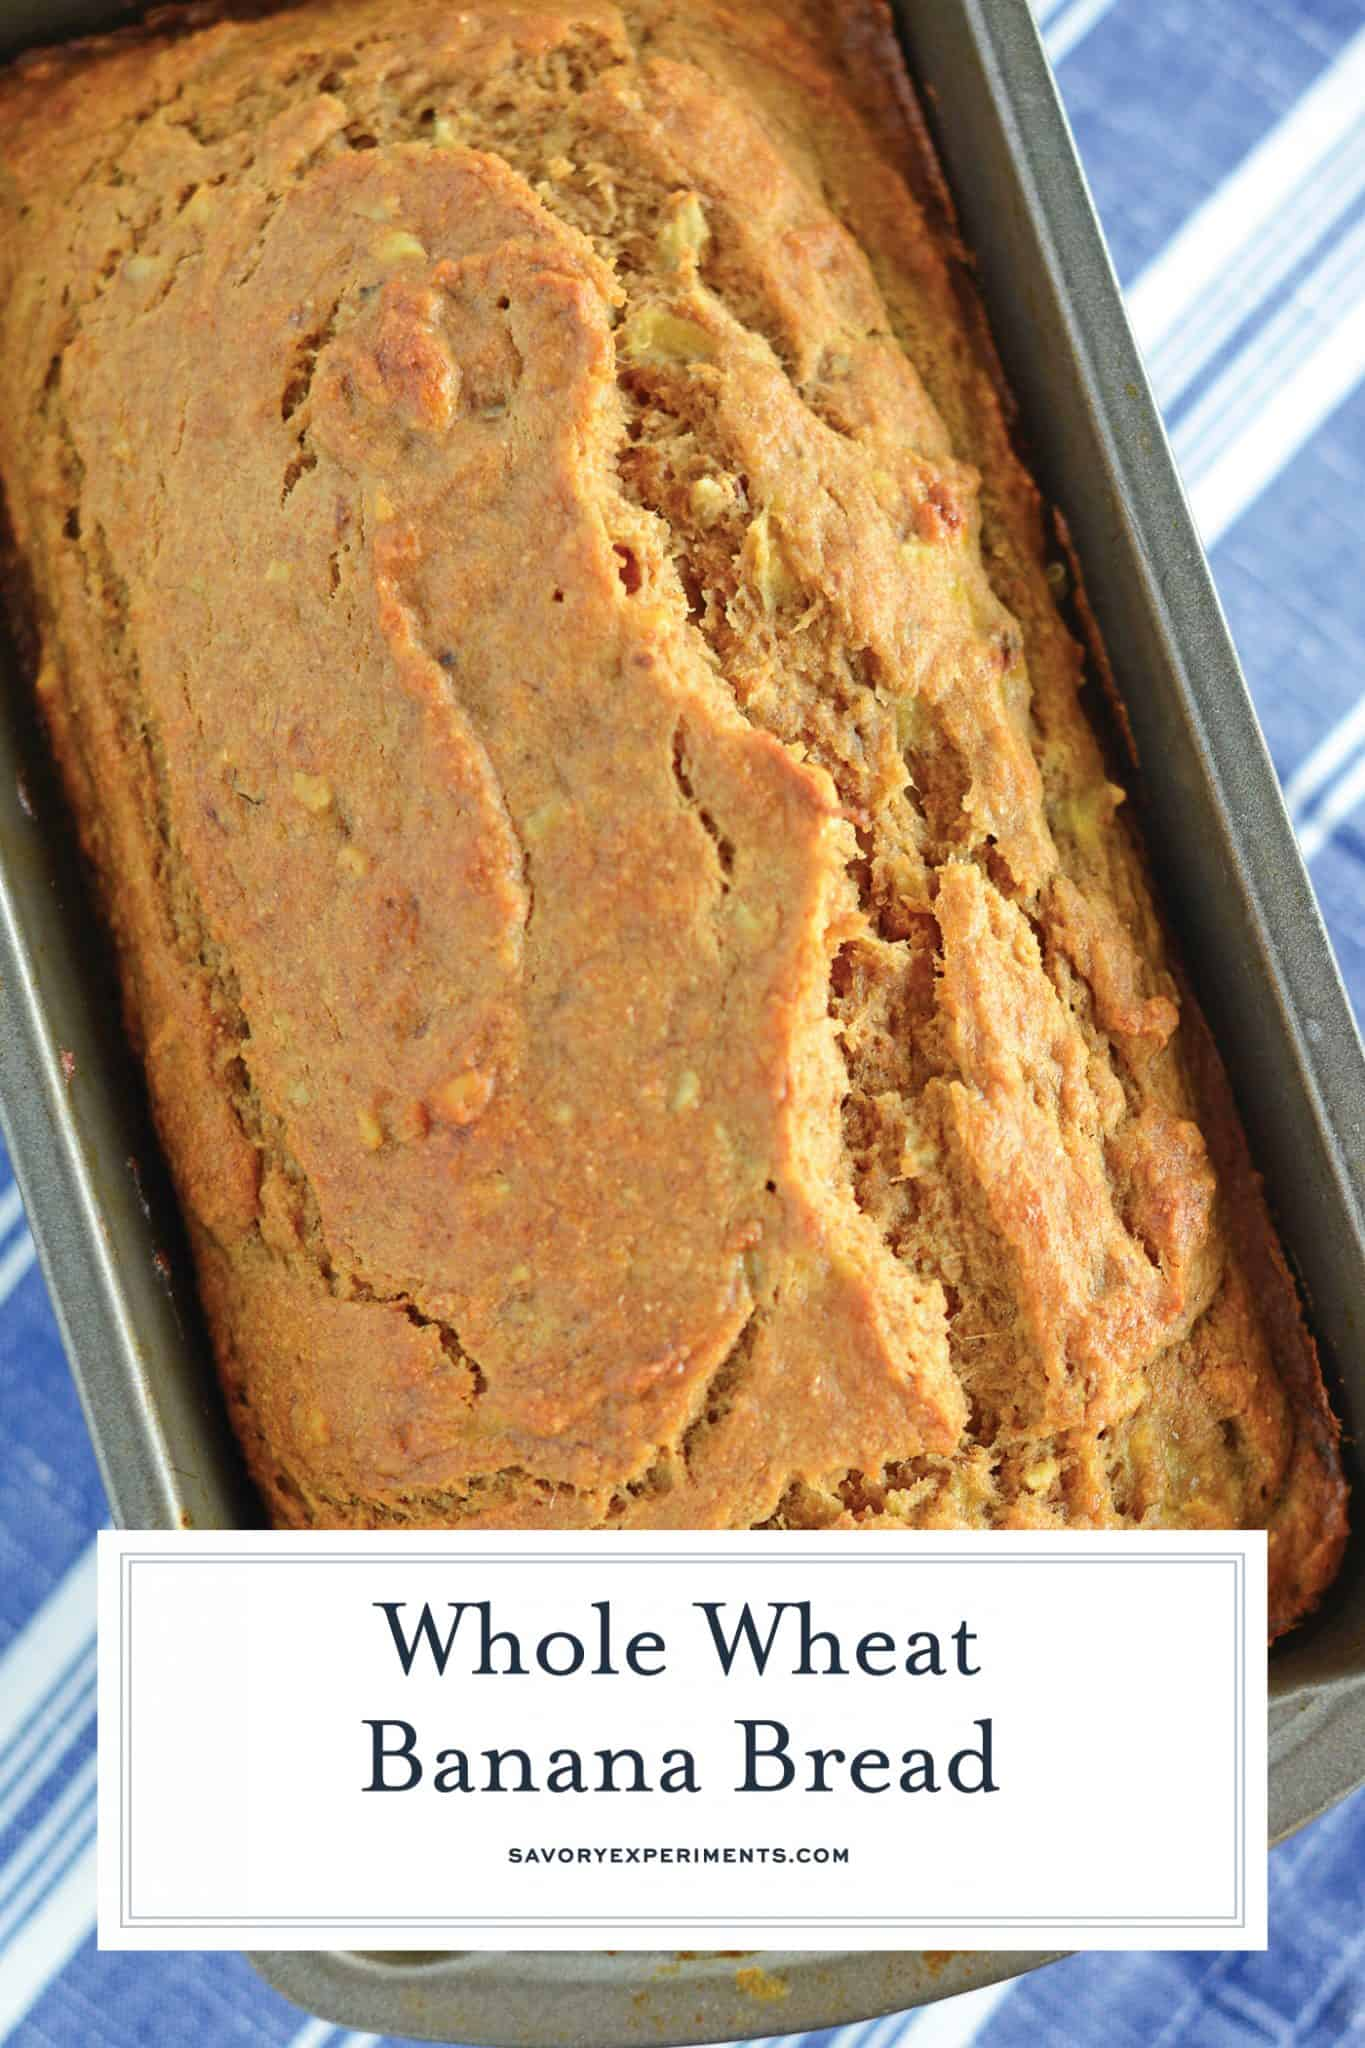 Whole Wheat Banana Bread is a healthier version of regular banana bread! Add pecans or walnuts for even more flavor! #wholewheatbananabread #bananabreadrecipe #bestbananabread www.savoryexperiments.com